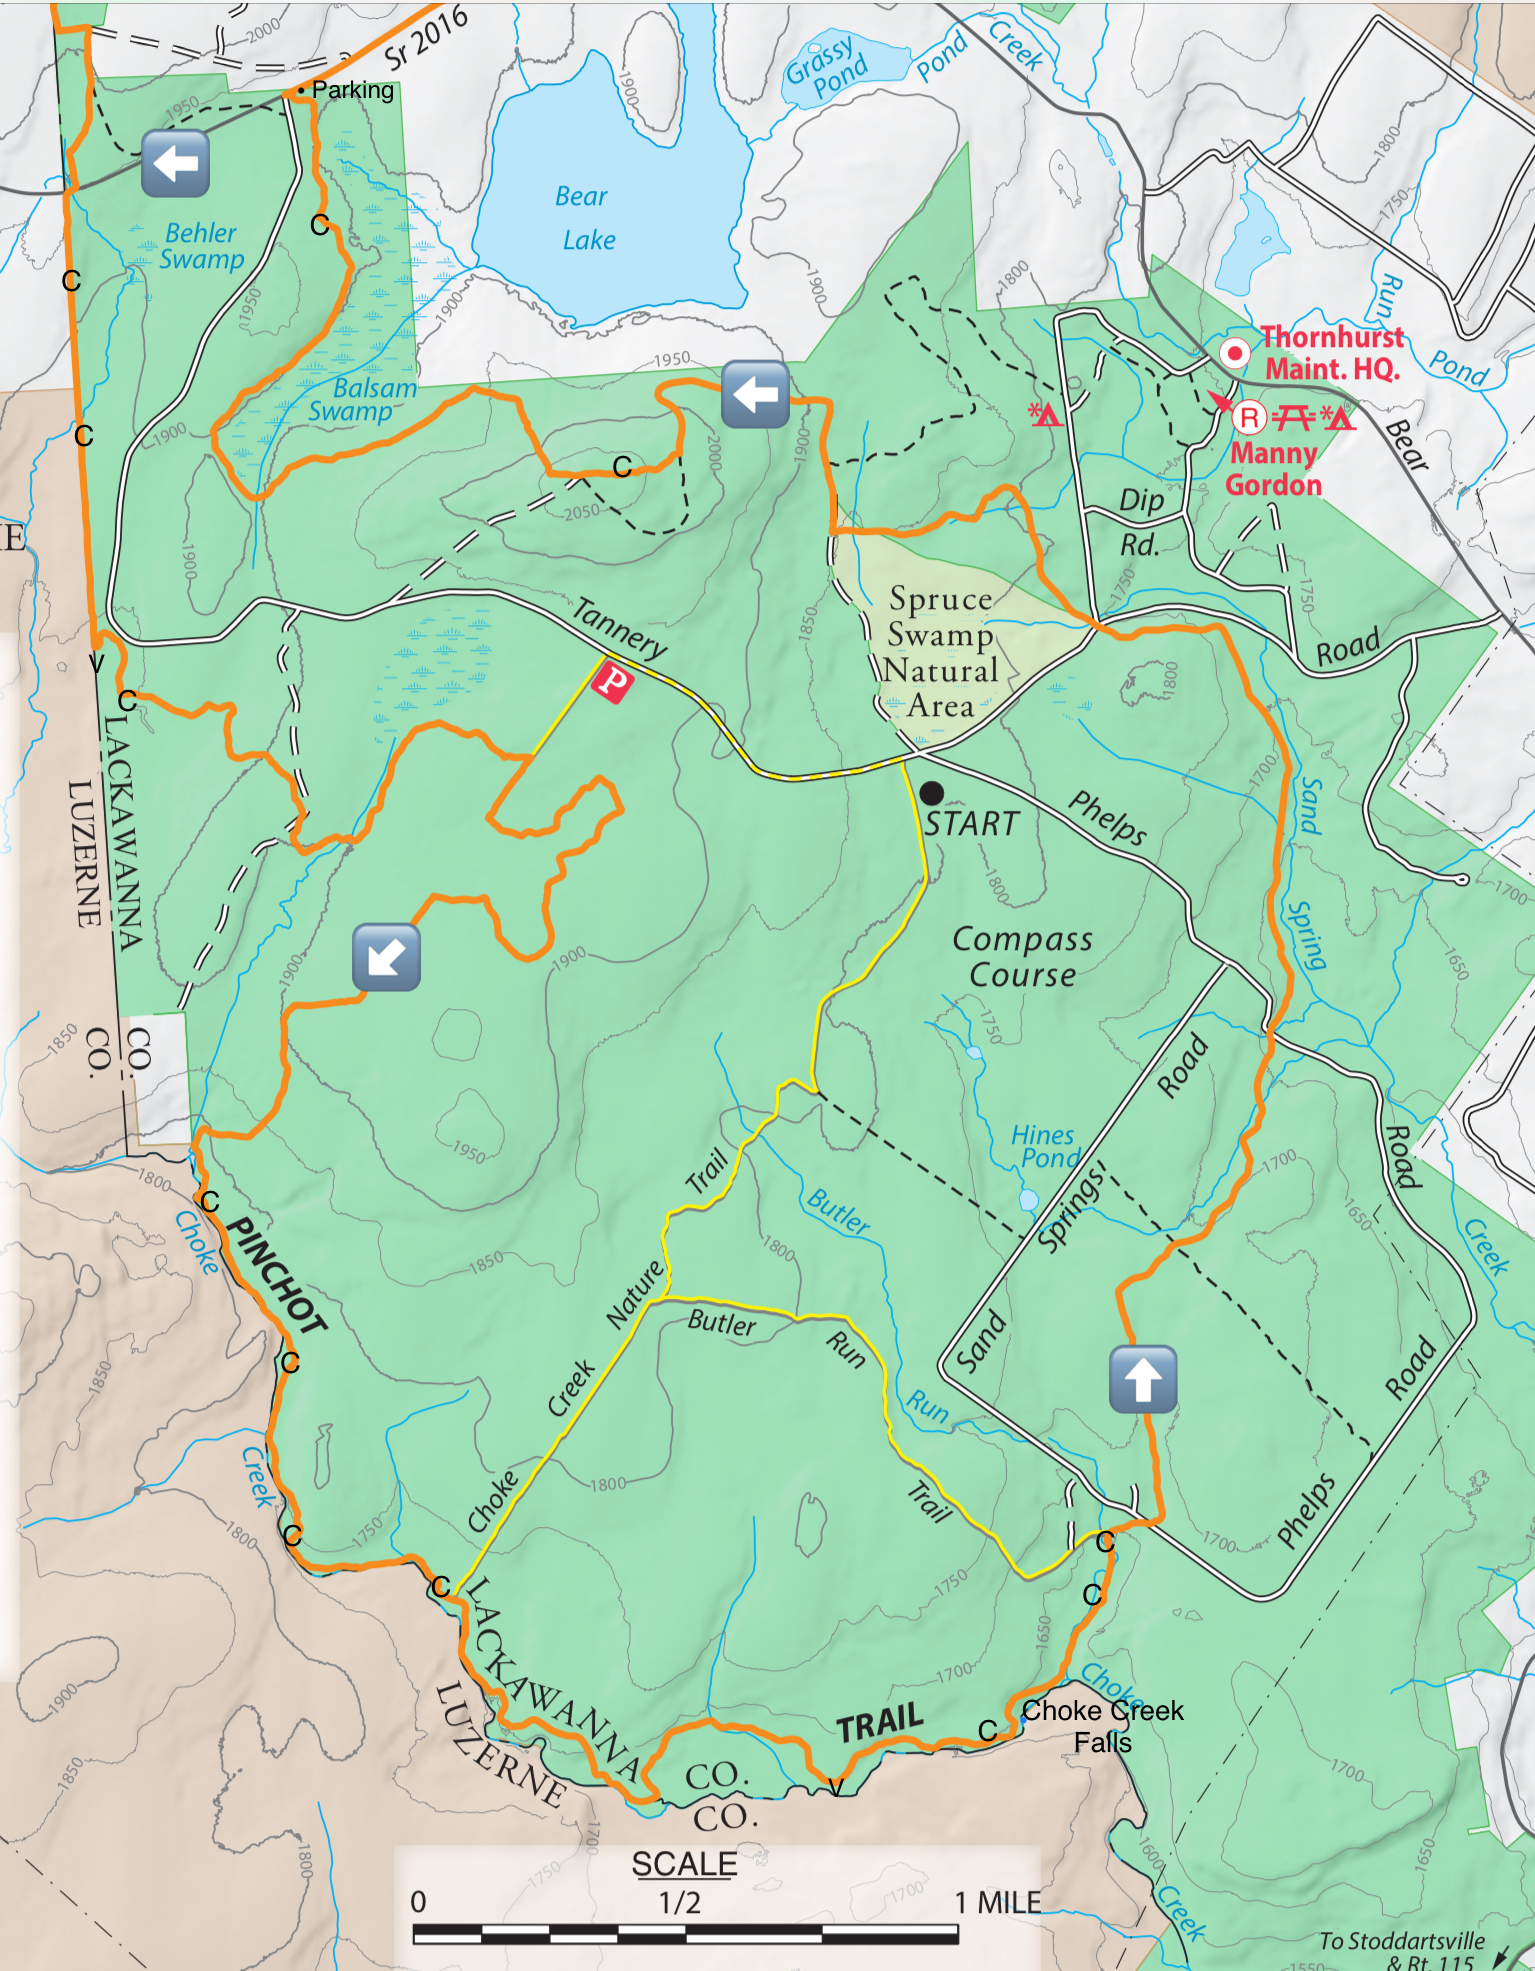 Hiking The Pinchot Trail South Loop Pinchot State Forest Endless Mountains Experience